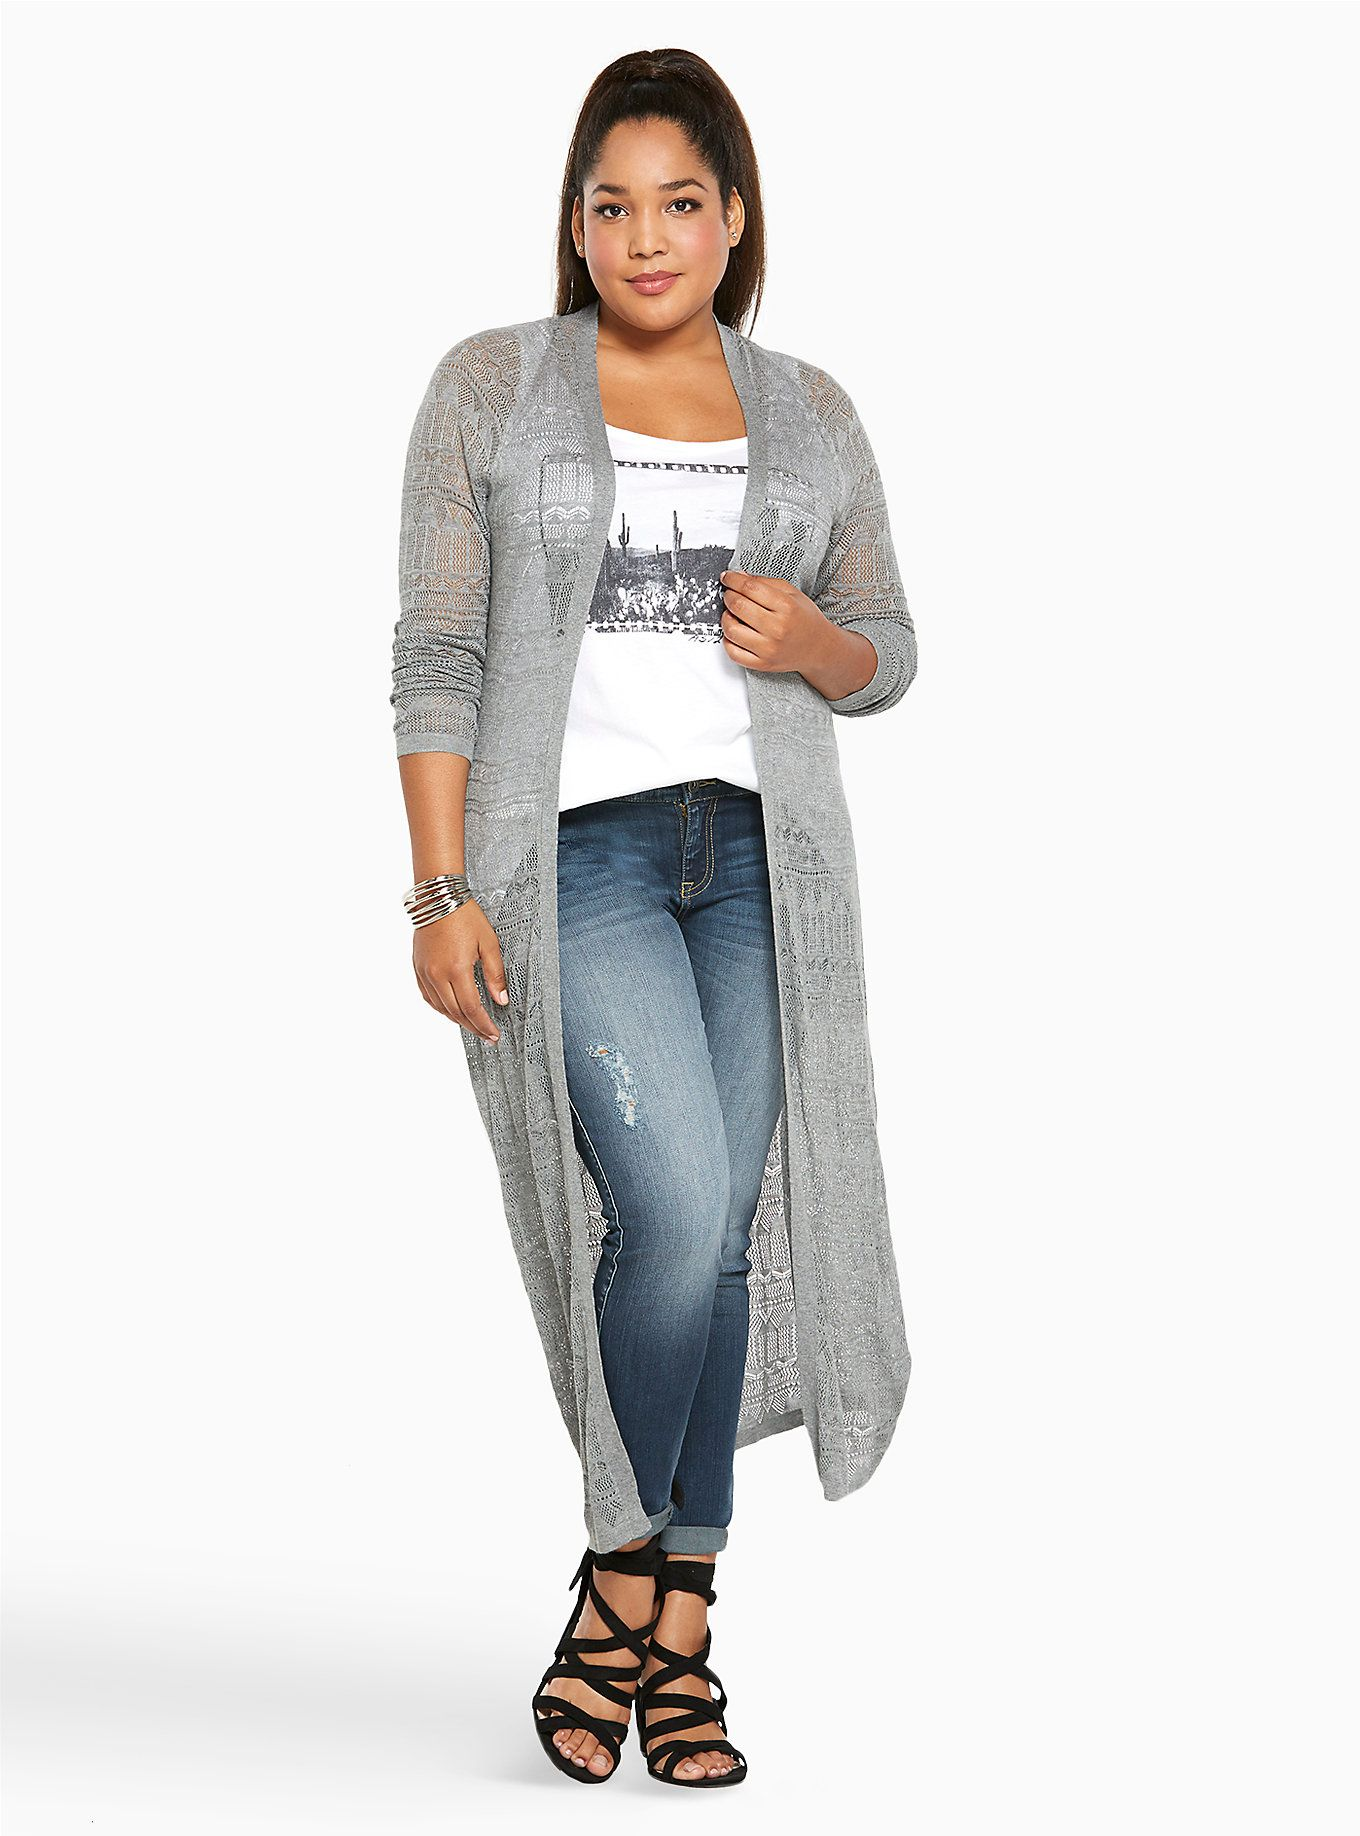 Pointelle Duster Cardigan | Dusters, Heather grey and Gray